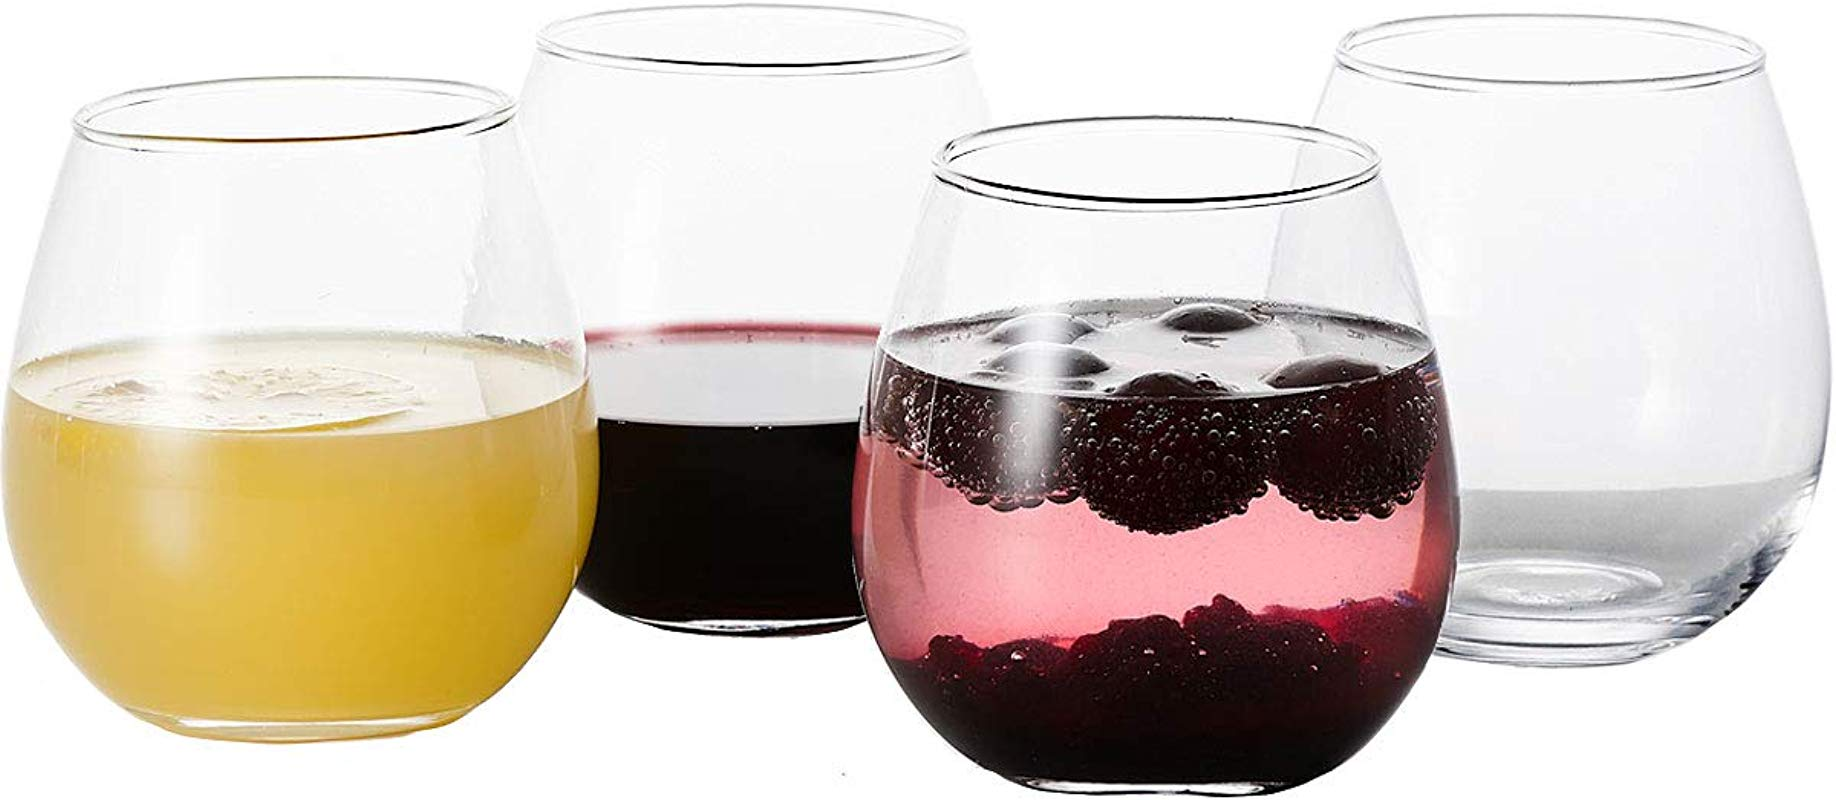 GoodGlassware Stemless Wine Glasses Set Of 4 15 Oz Crystal Clear Clarity Classic Bowl Design Perfect For Red And White Wines Lead Free Dishwasher Safe All Purpose Tumblers